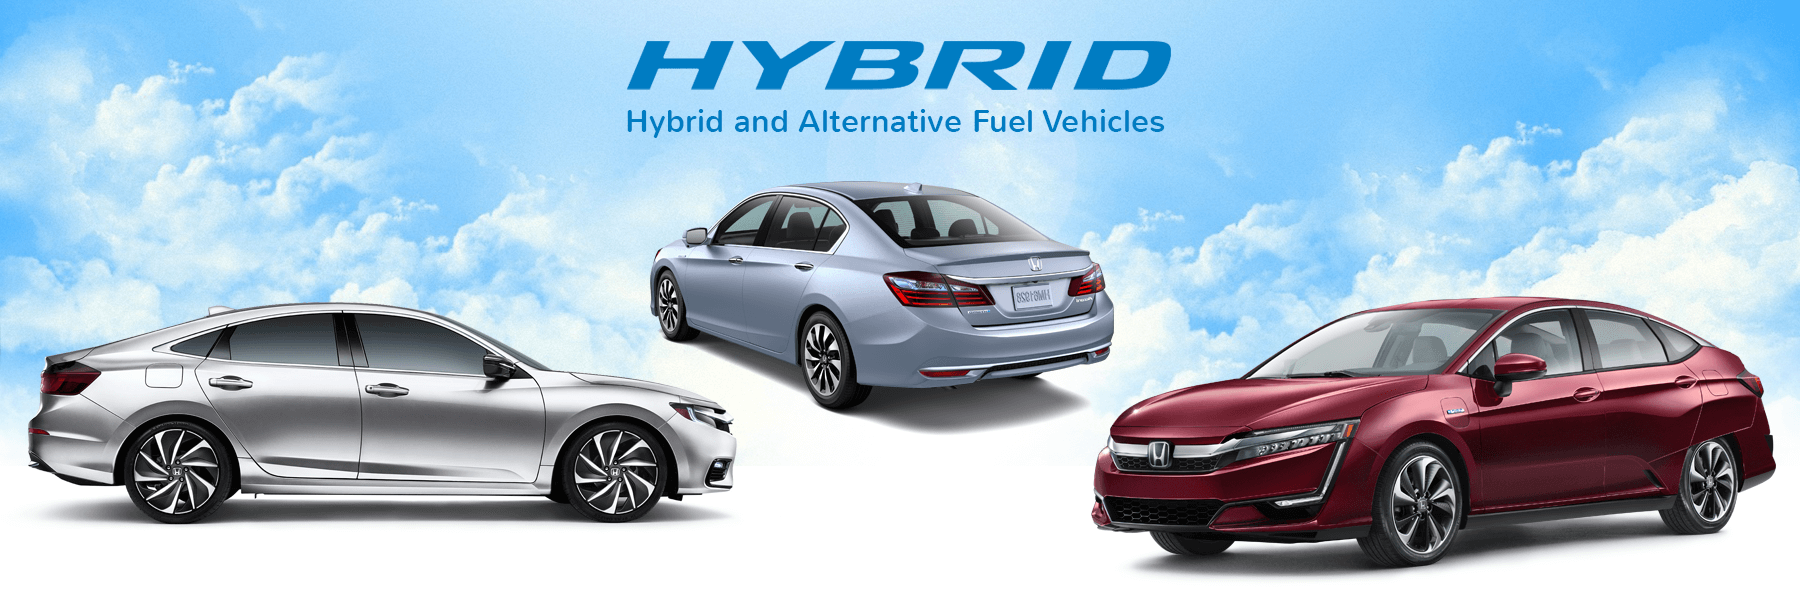 hybrids electric cars alternative fuel vehicles